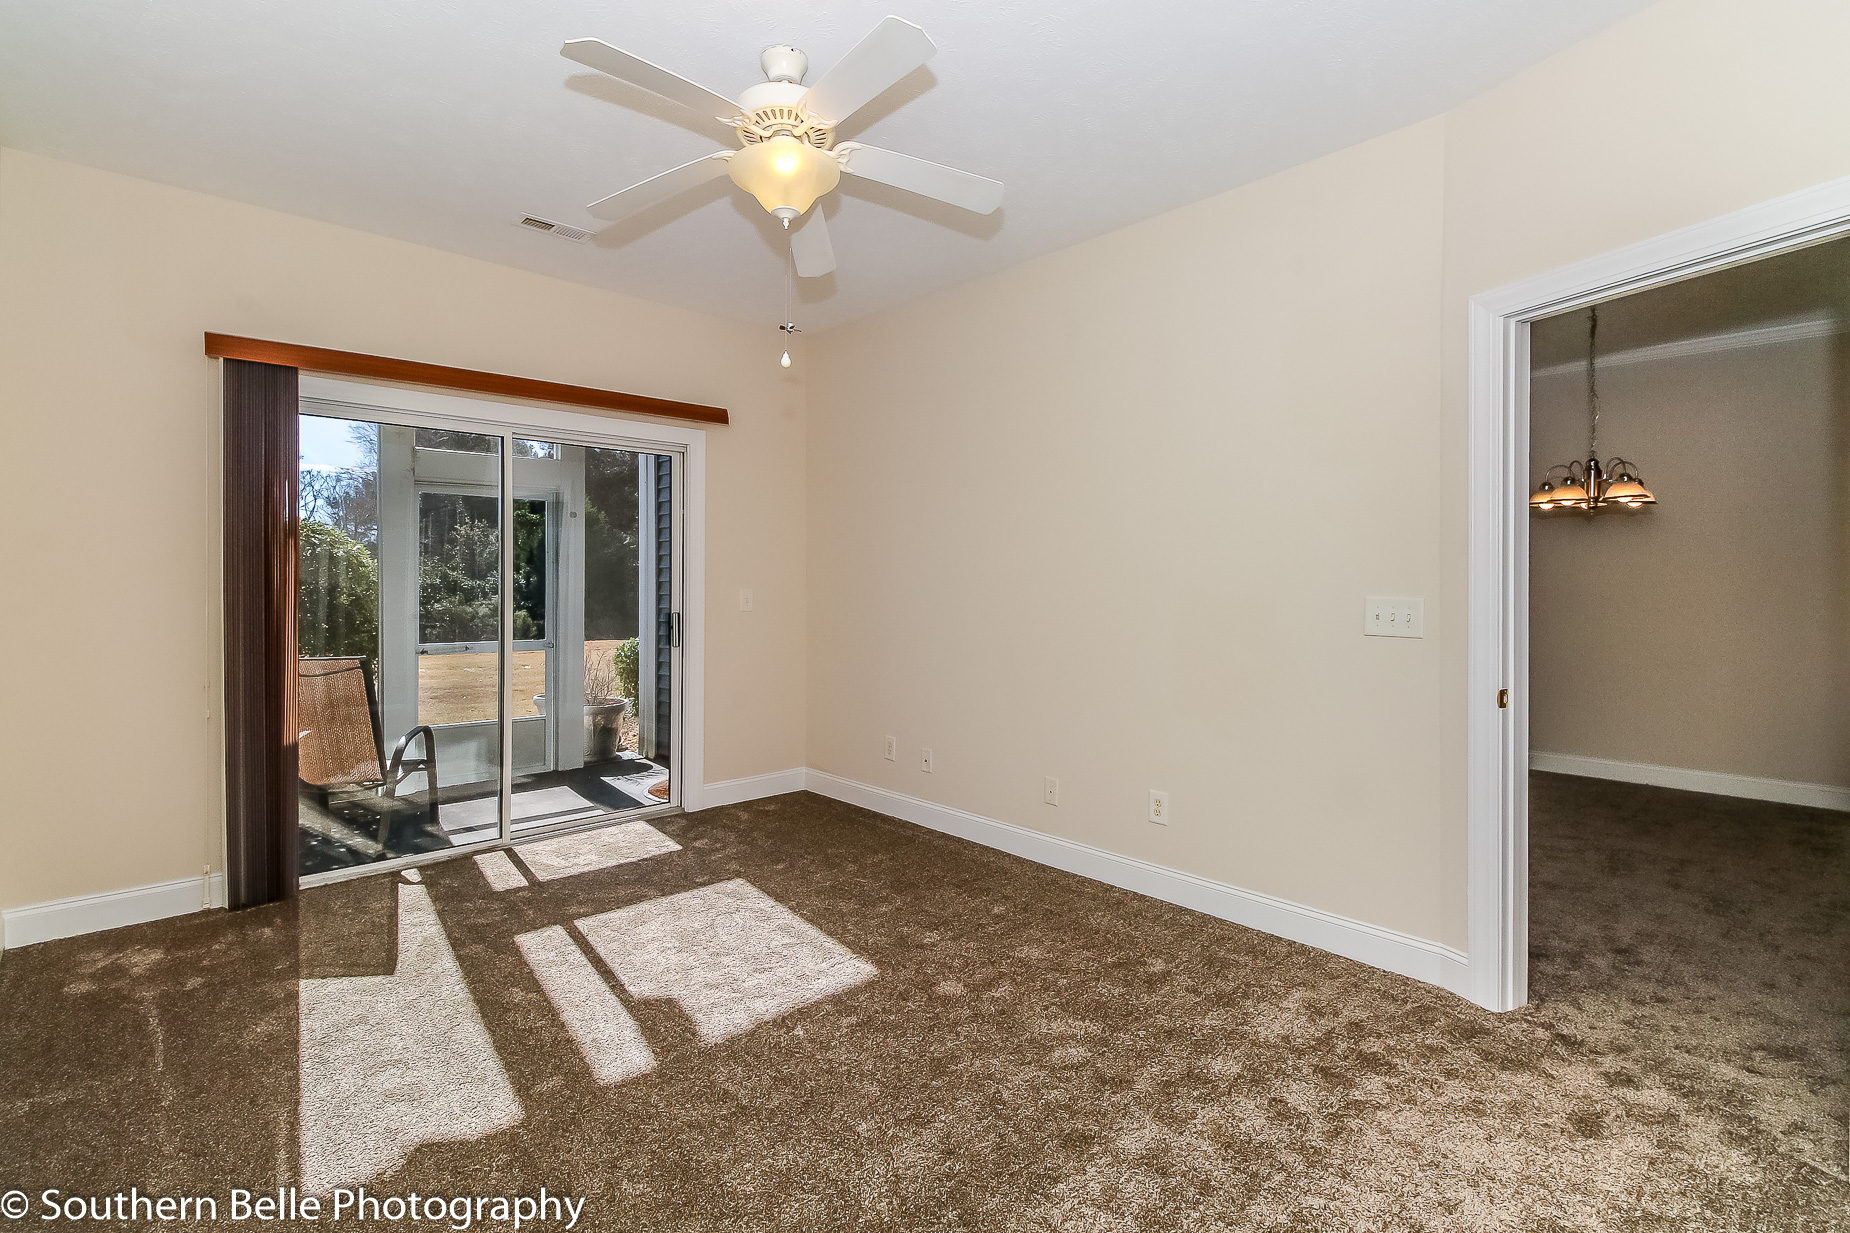 20. Master Bedroom with Lake View WM